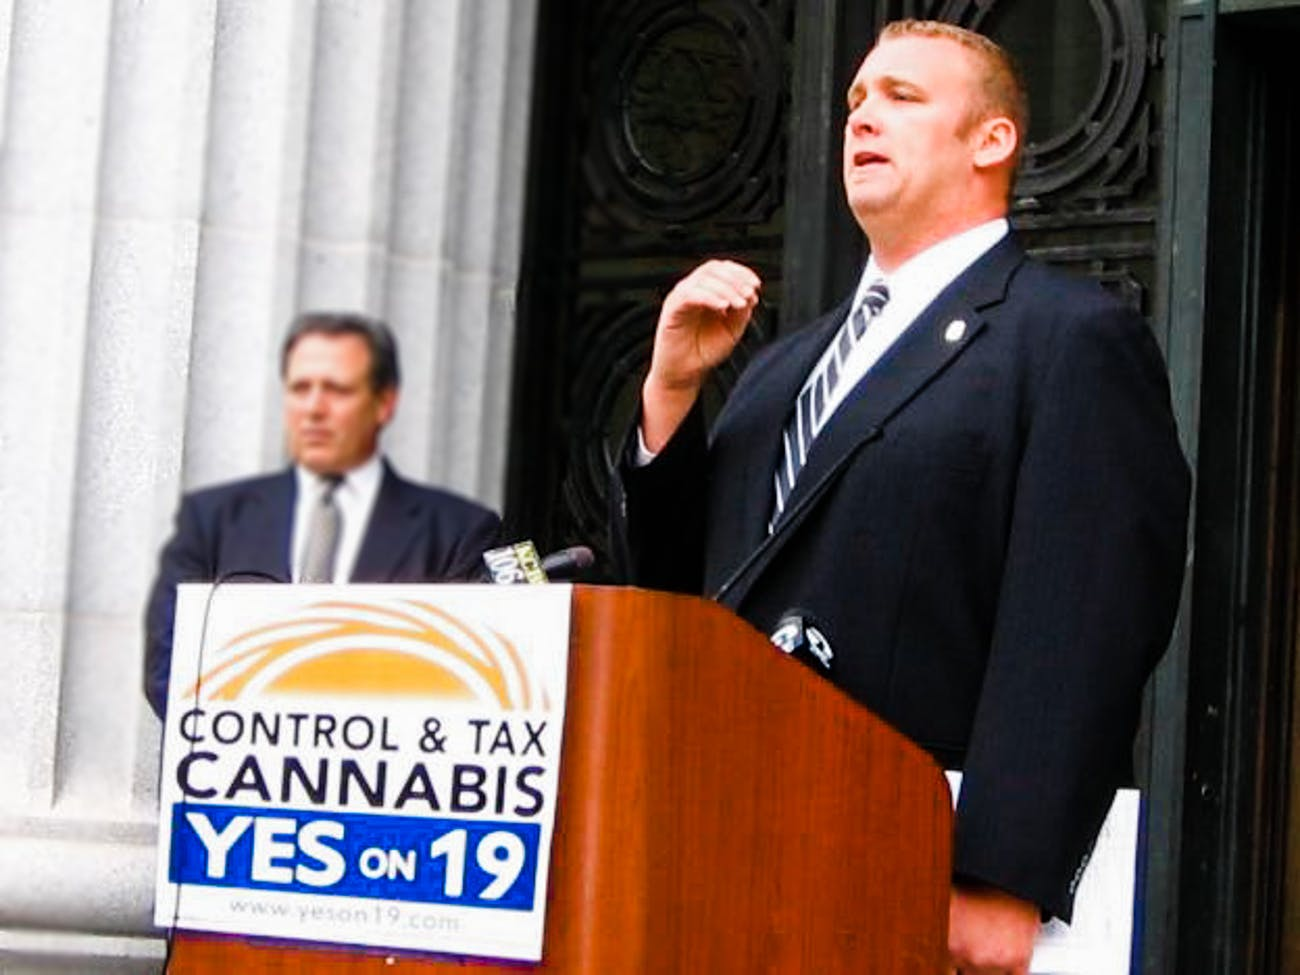 Nate Bradley is a 3 of 3 Police who forced a man to eat weed now have to pay him $100,000